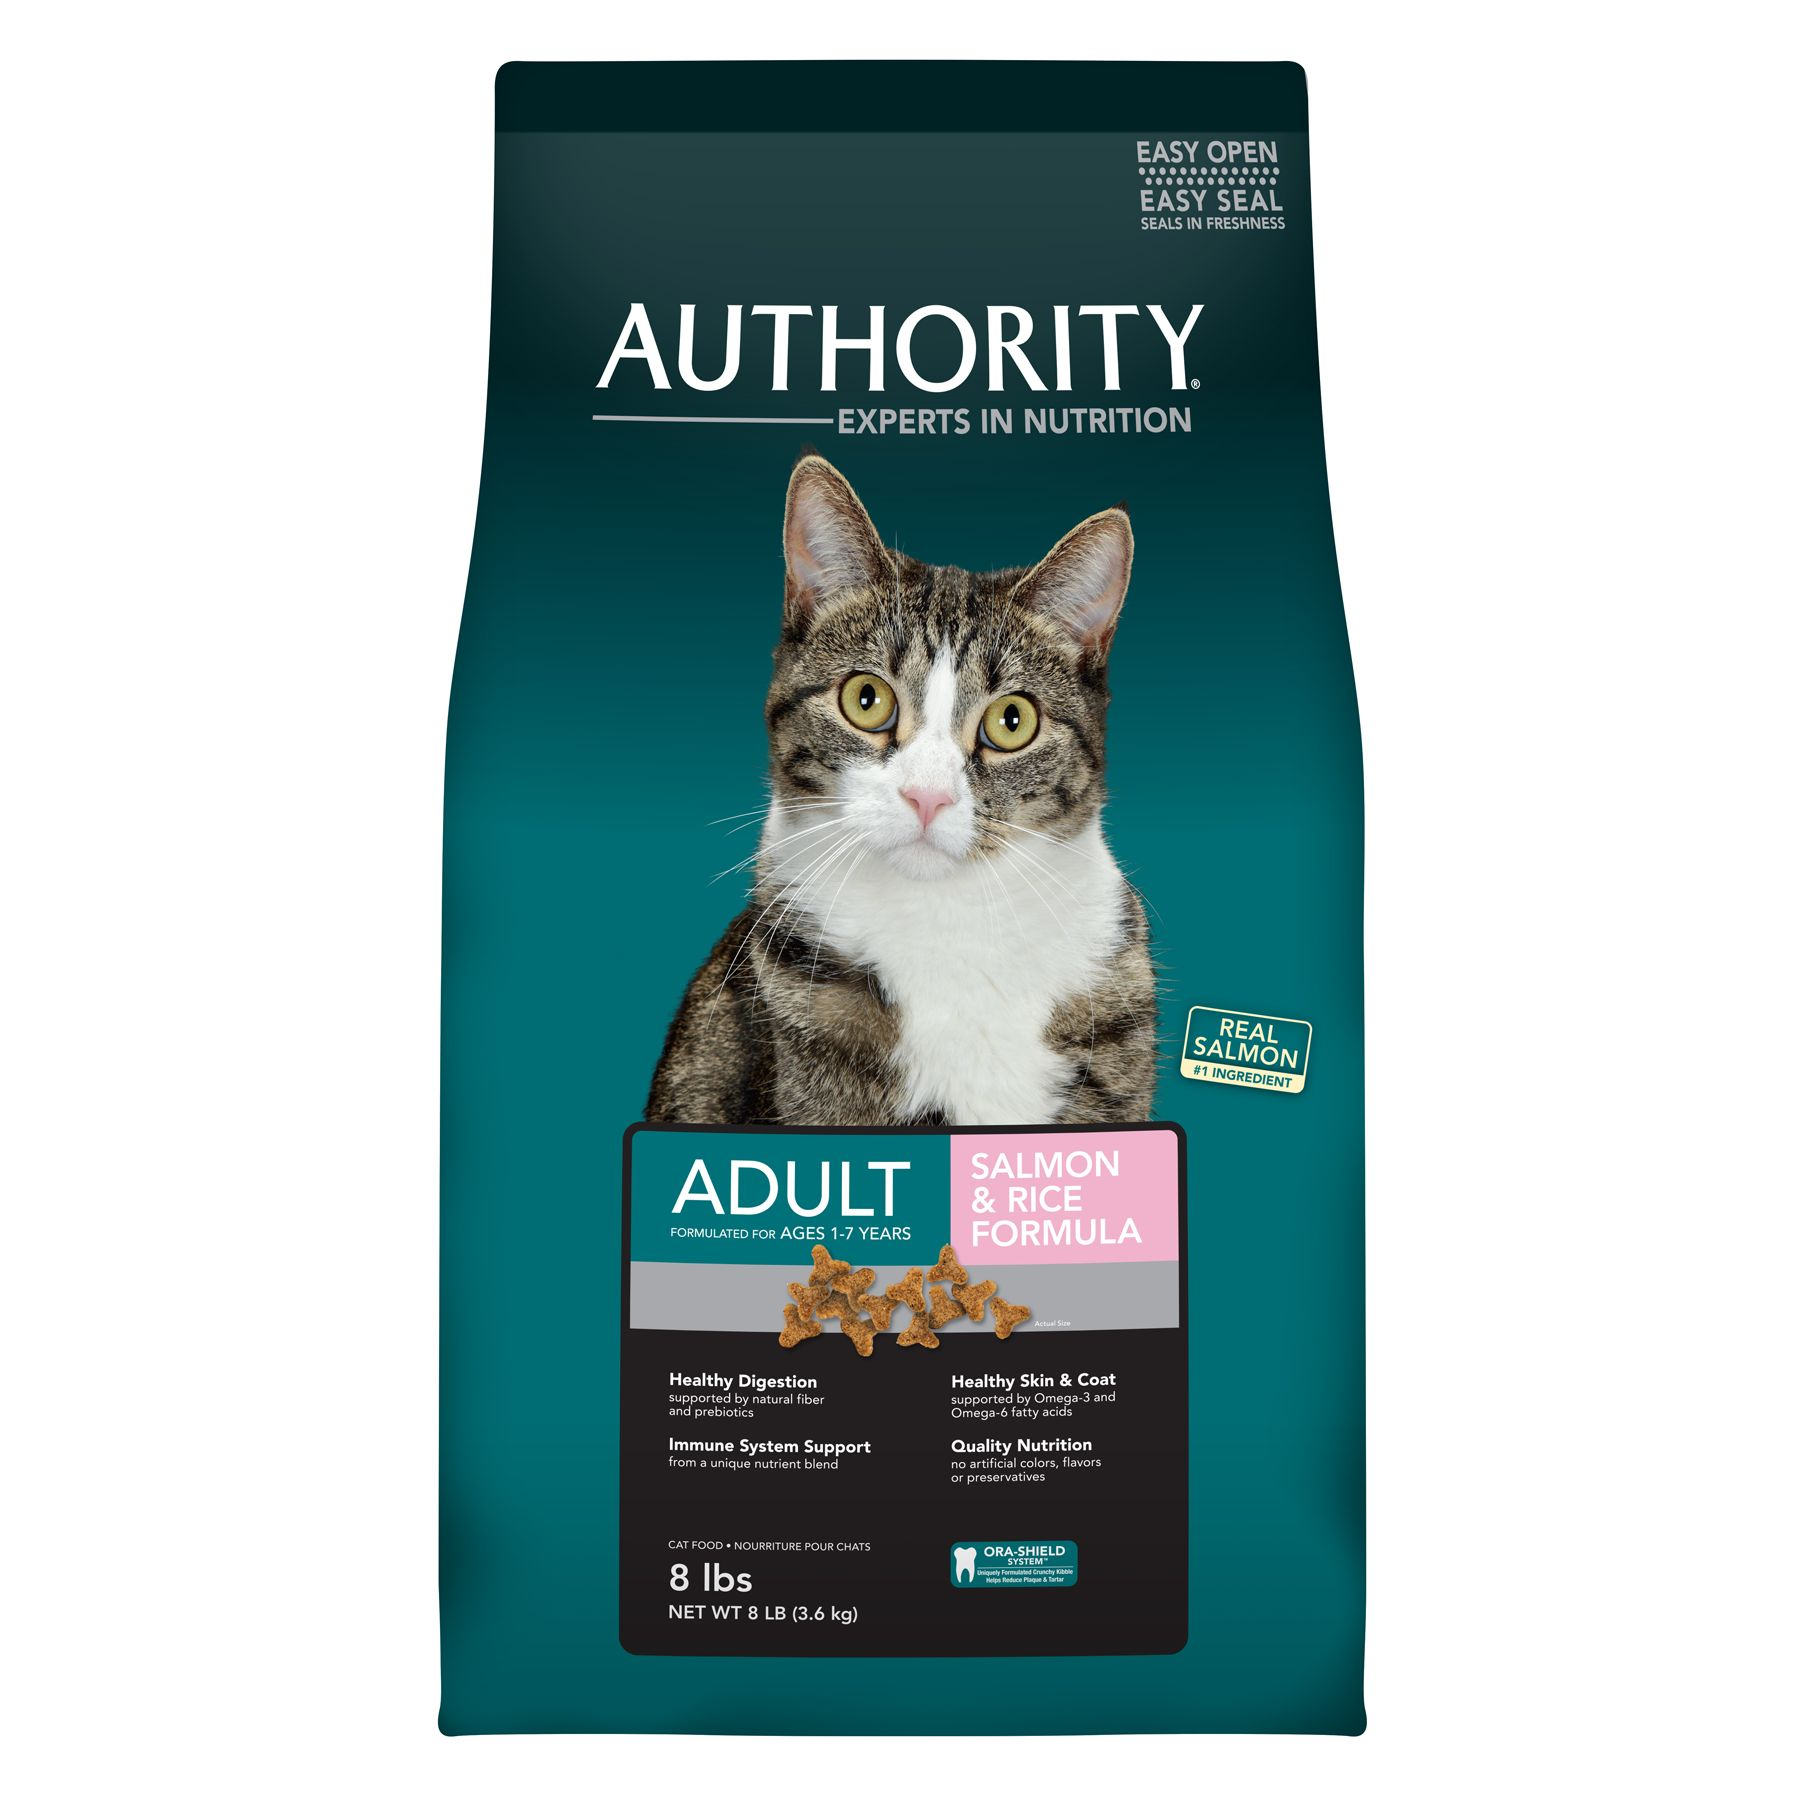 Authority Adult Cat Food Salmon And Rice Size 8 Lb